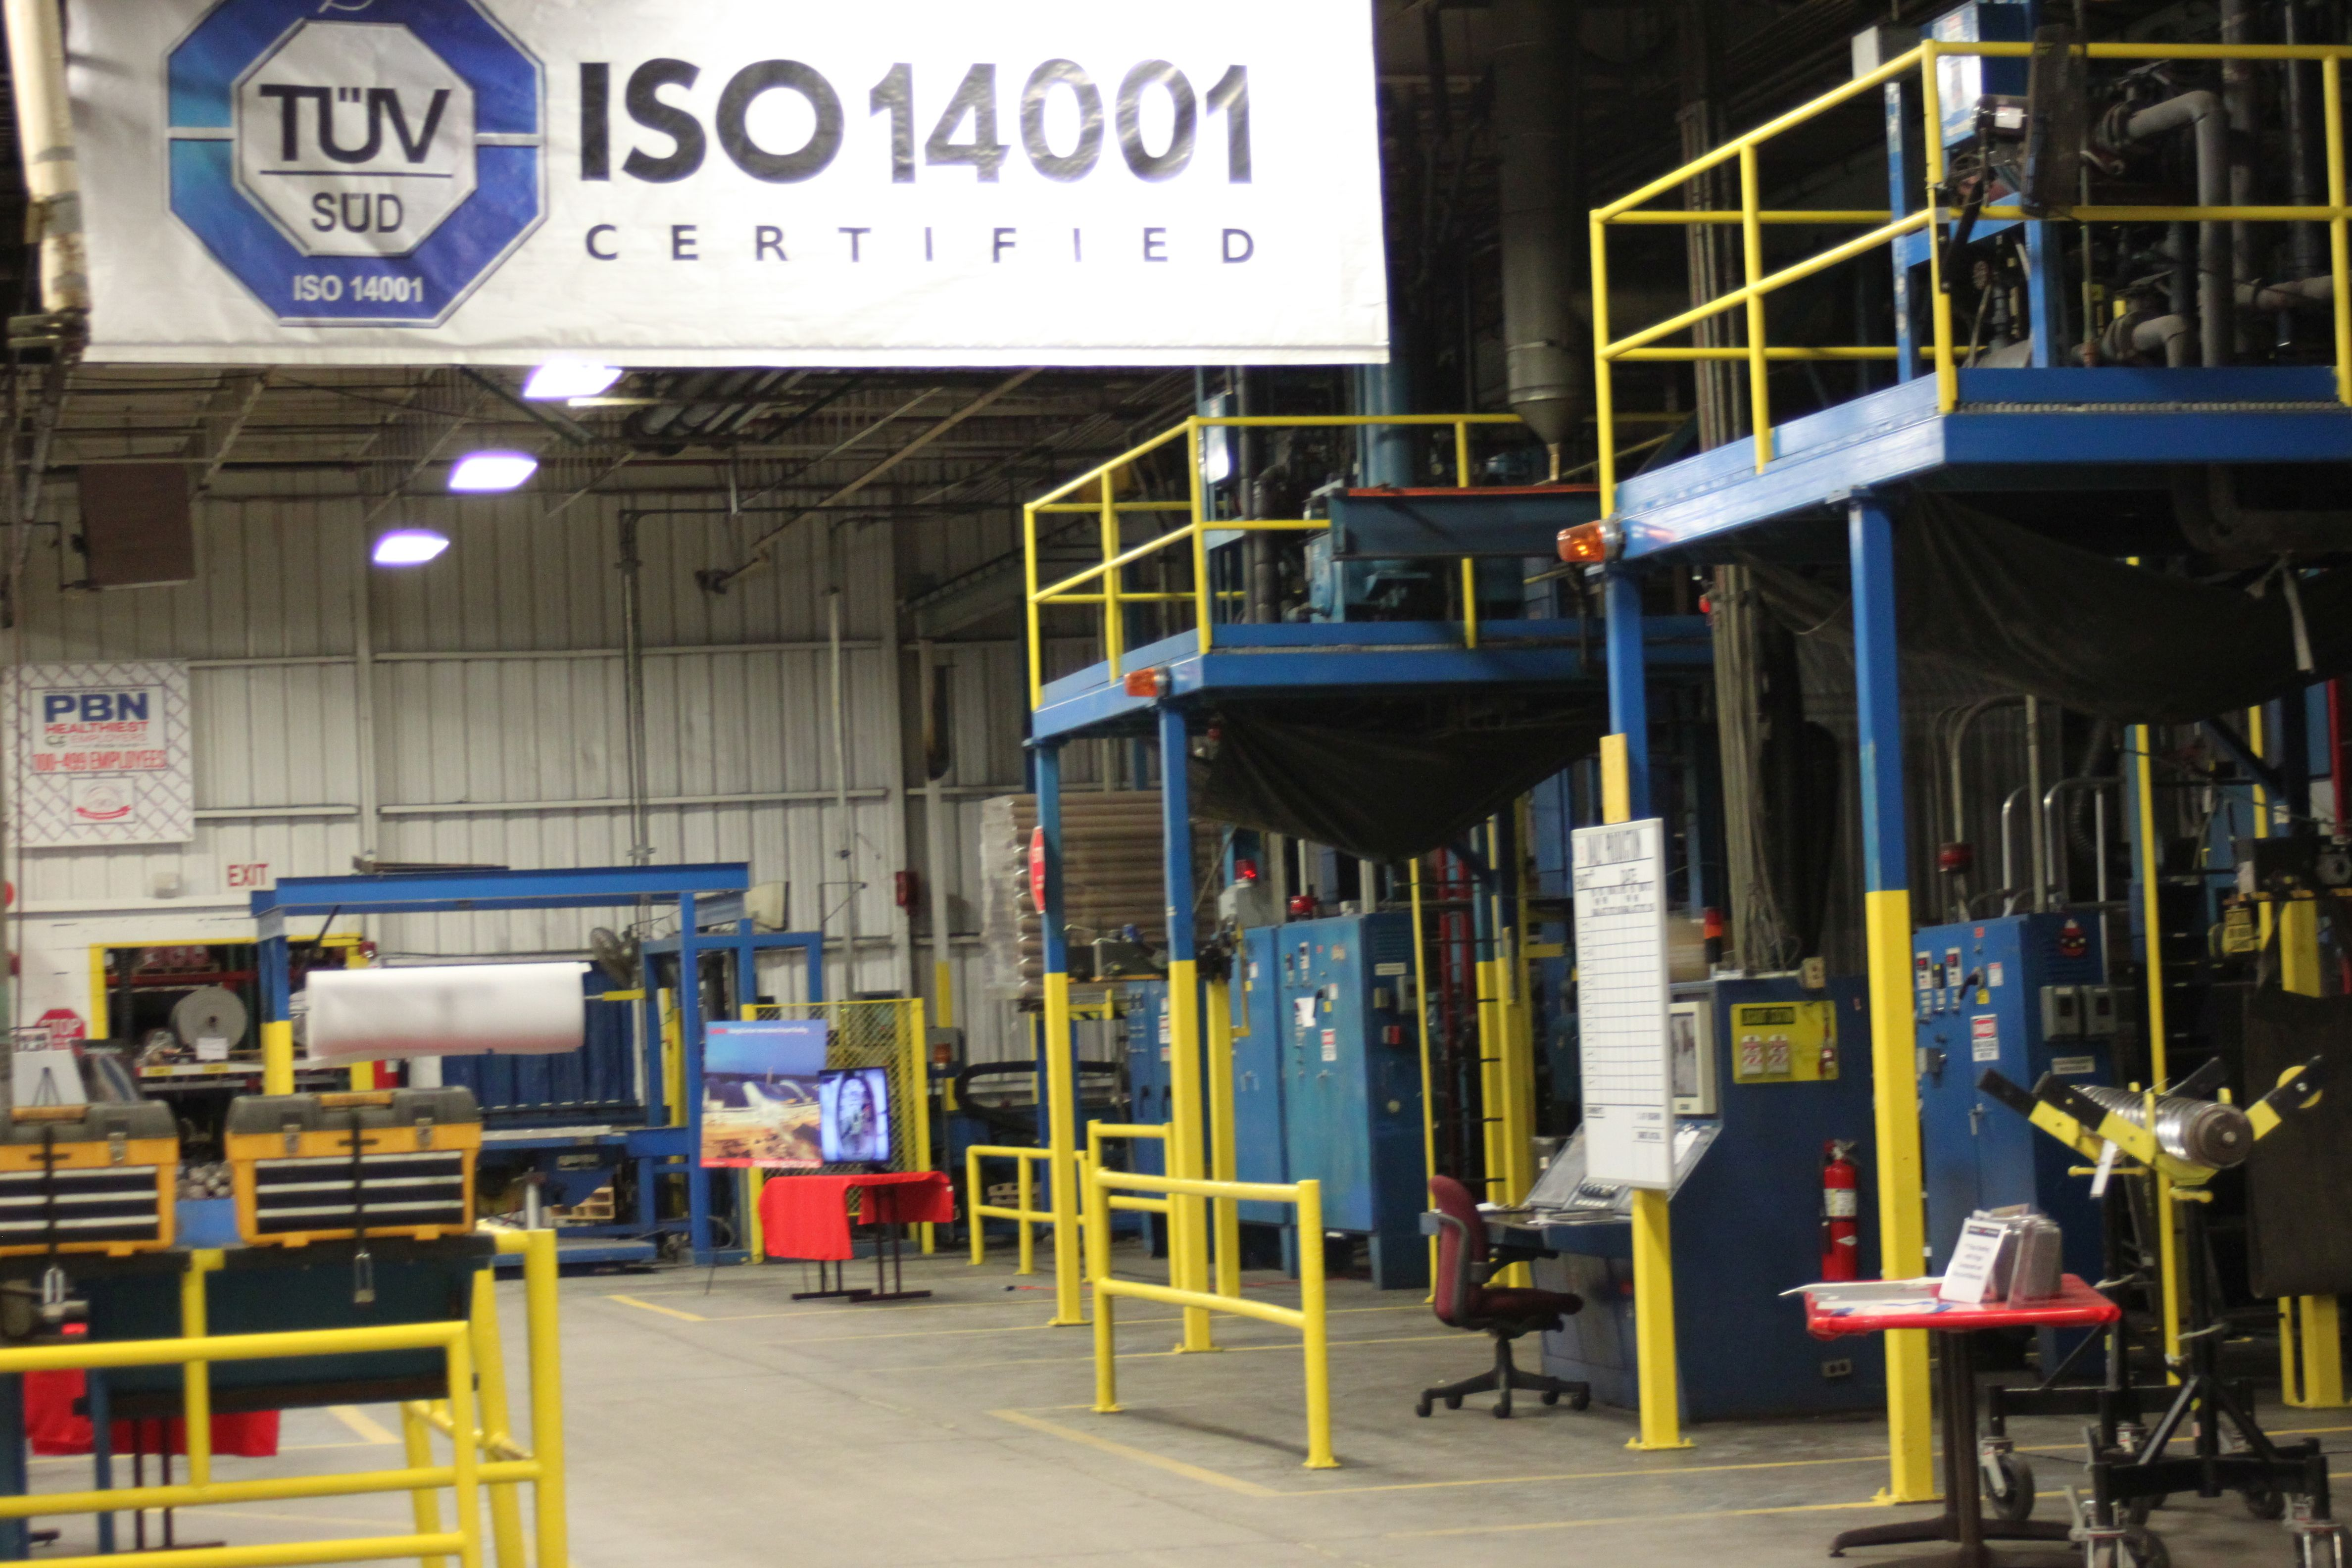 Cooley ISO 14001